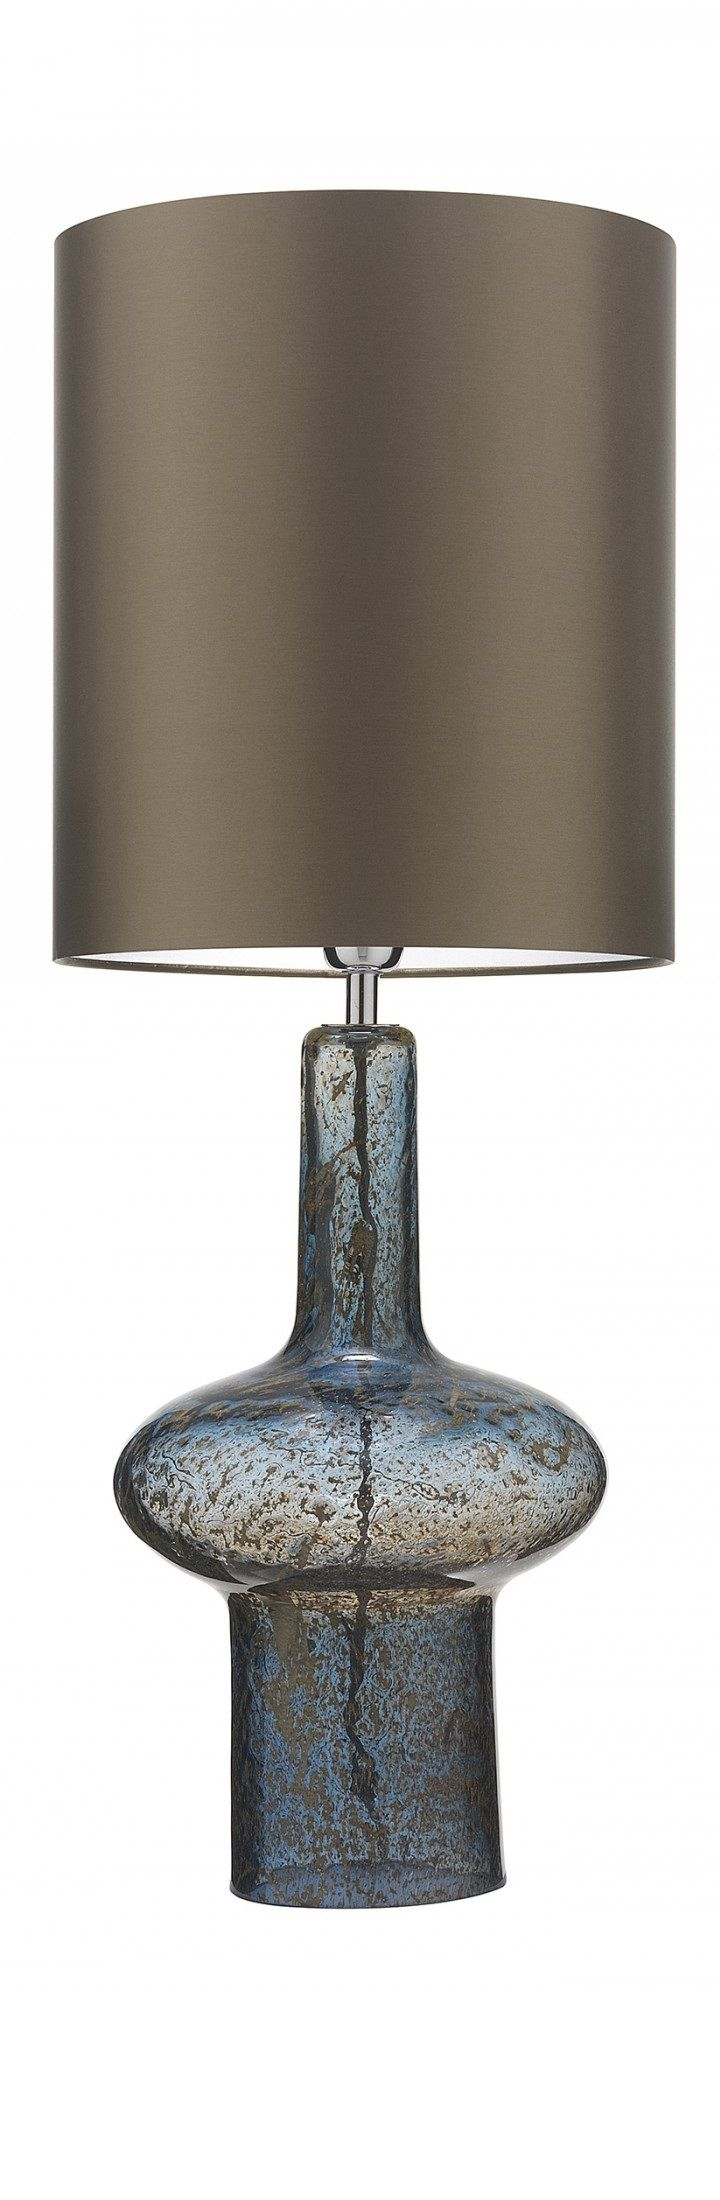 Teal lamp shades table lamps style light design most decorative -  Blue Lamp Blue Lamps Lamps Blue Lamp Blue